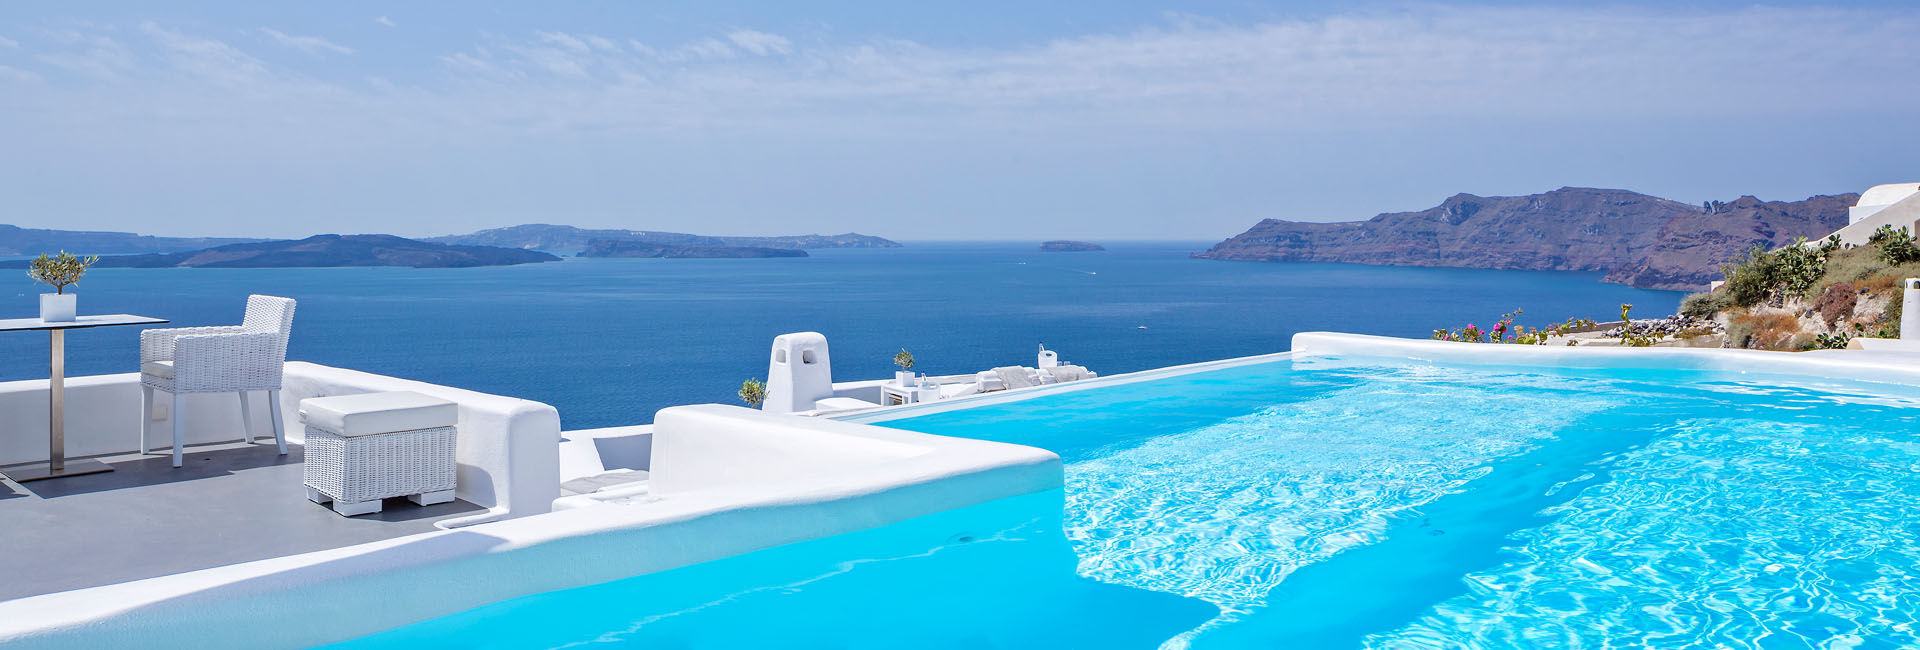 Share your Memories & Win a 3 Night's Stay at Canaves Oia